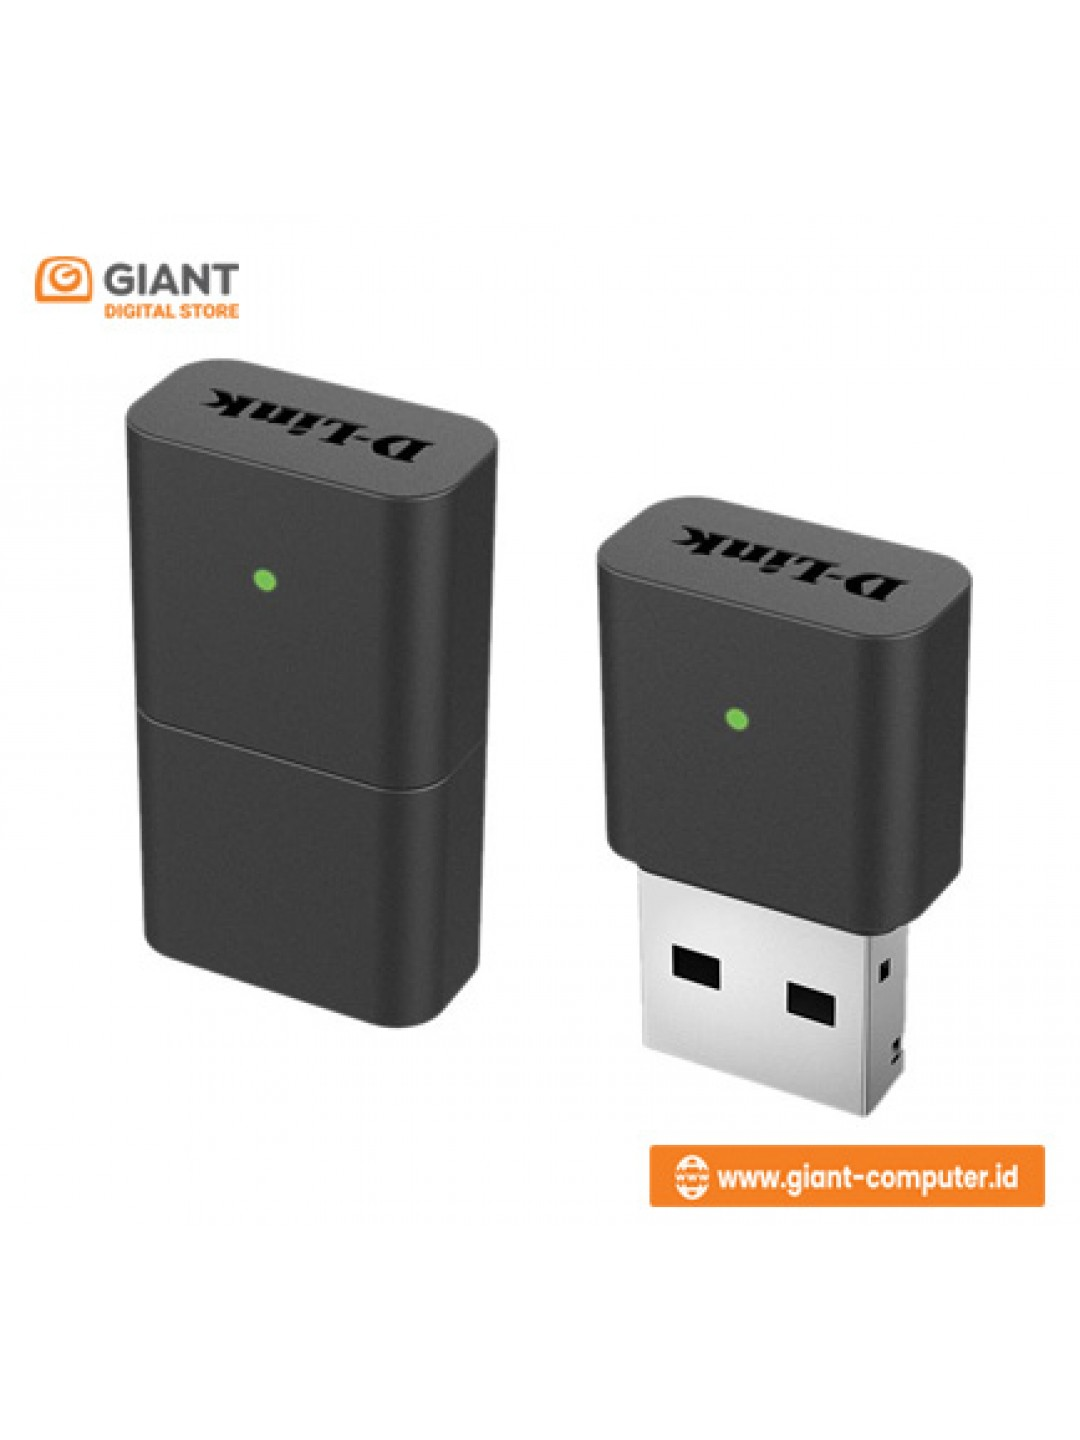 USB WIRELESS DWA - WN131N 300 MBPS NANO WIRELESS